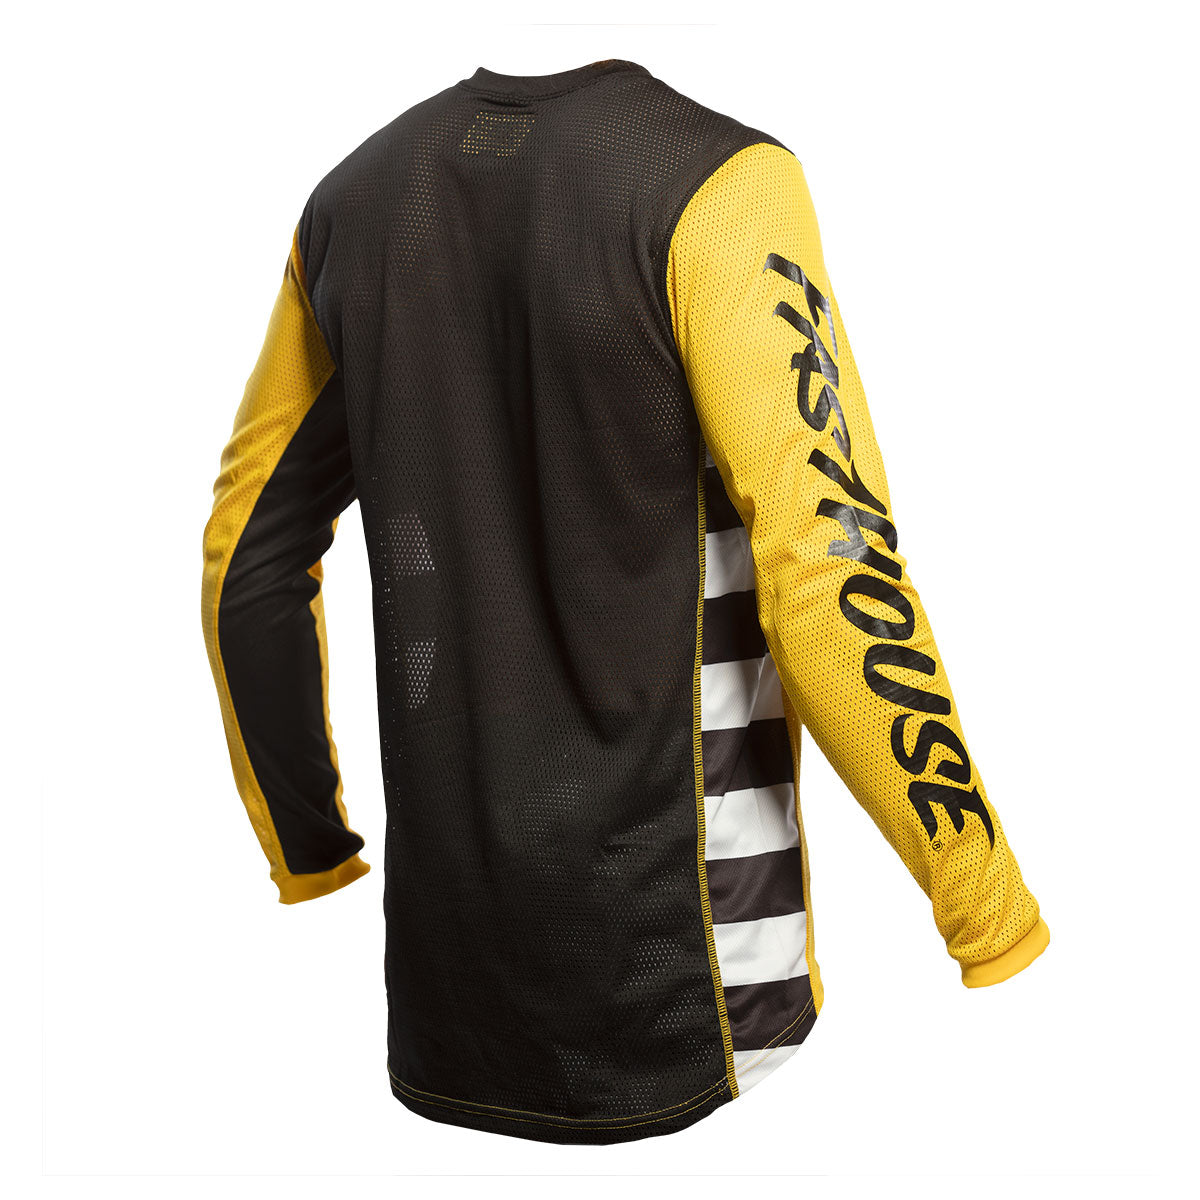 Originals Air Cooled Jersey - Gold/Black